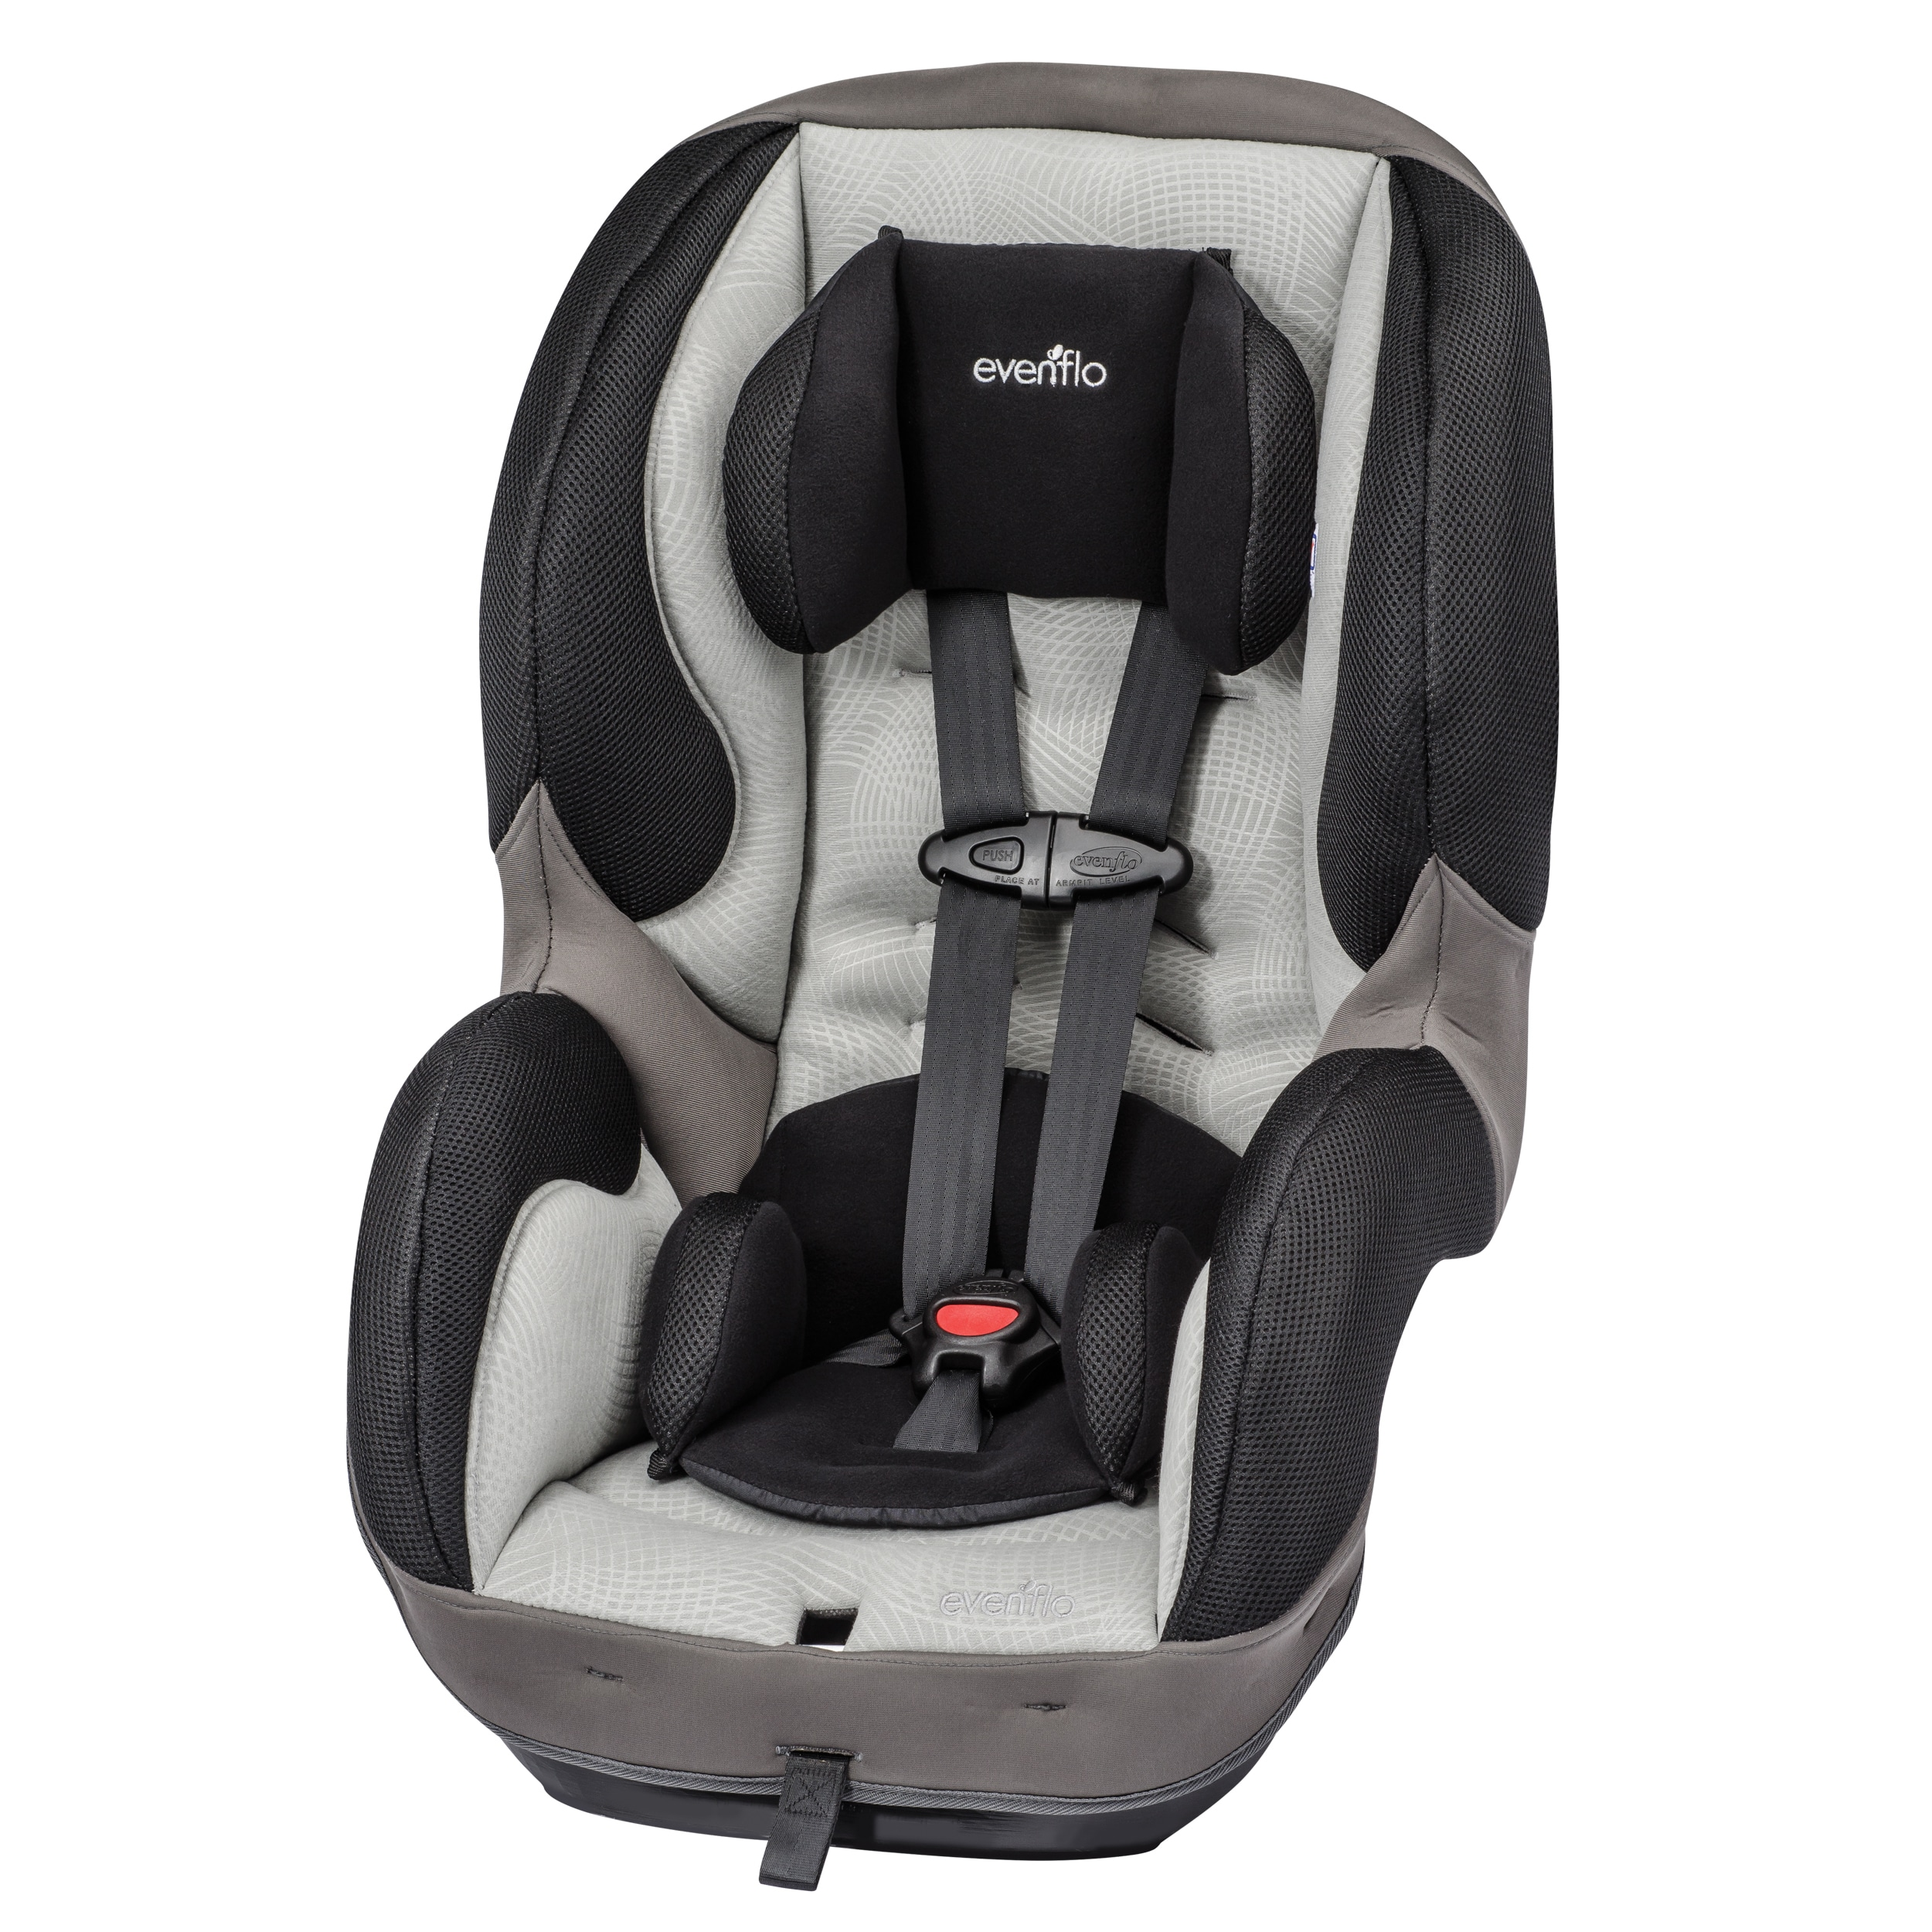 Evenflo SureRide DLX Convertible Car Seat in Paxton (Paxton)